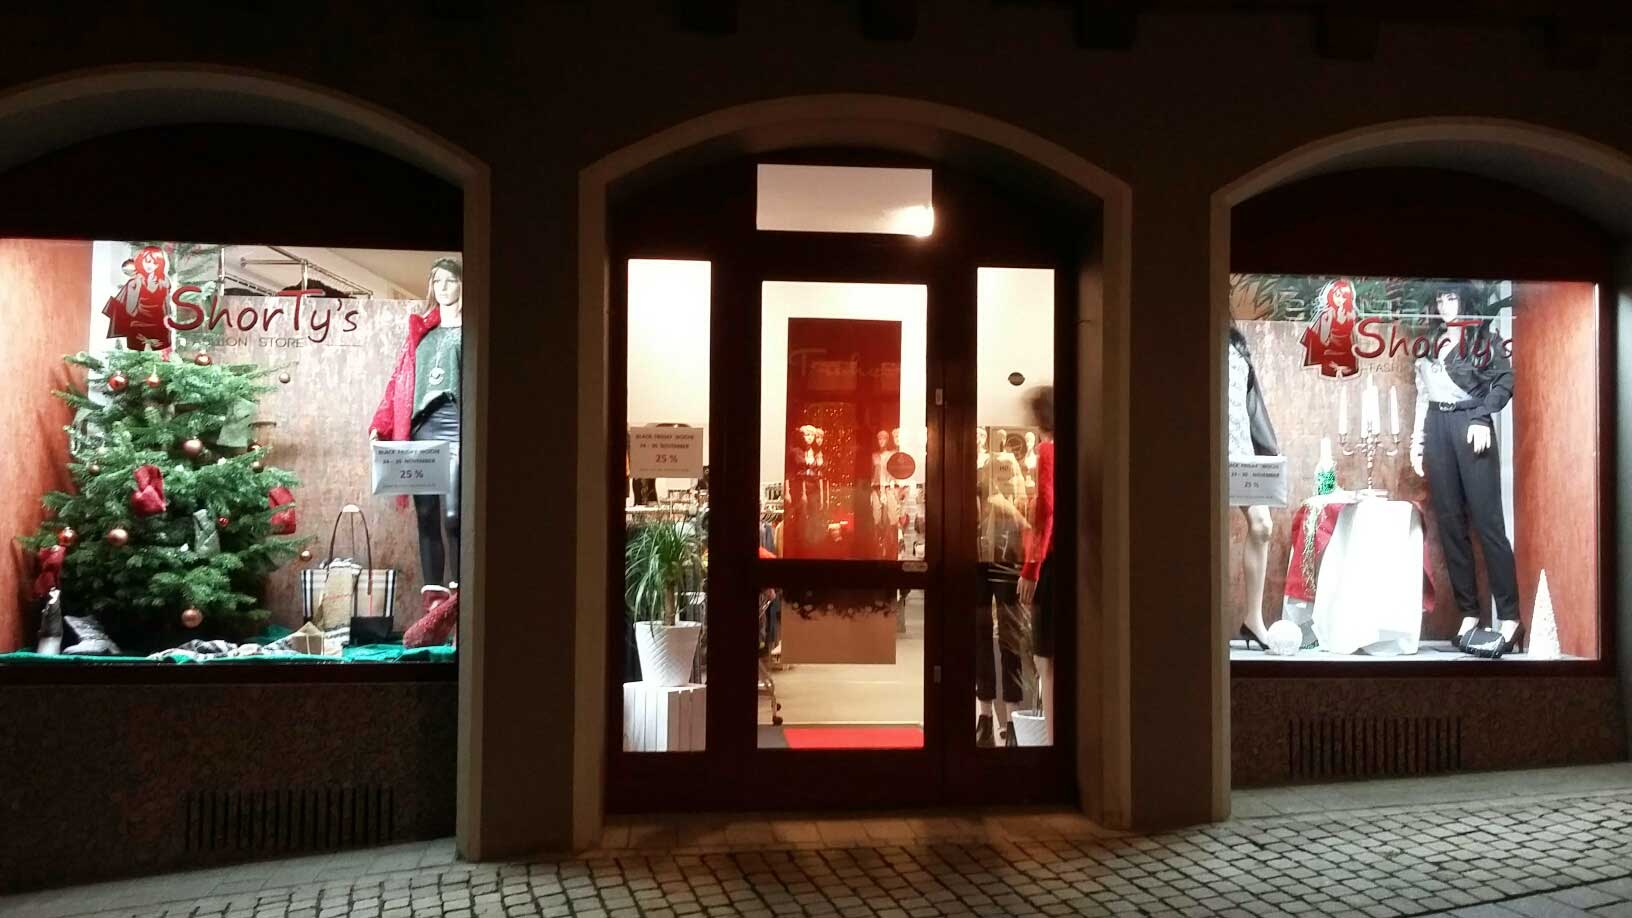 Schaufenster Shorty's Fashion Store in Eppingen